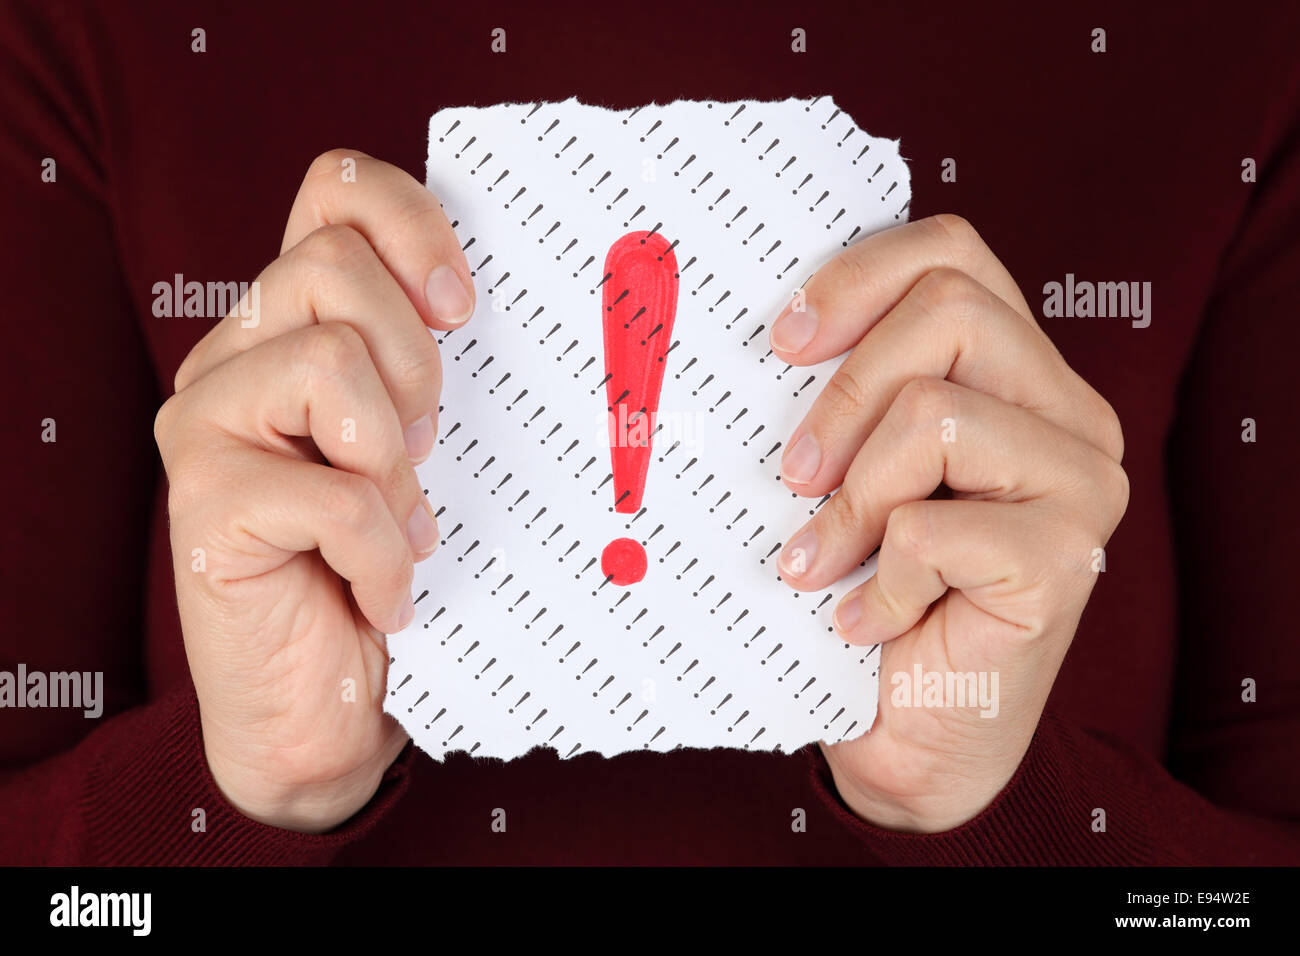 Piece of paper with red Exclamation mark in the woman's hands. - Stock Image